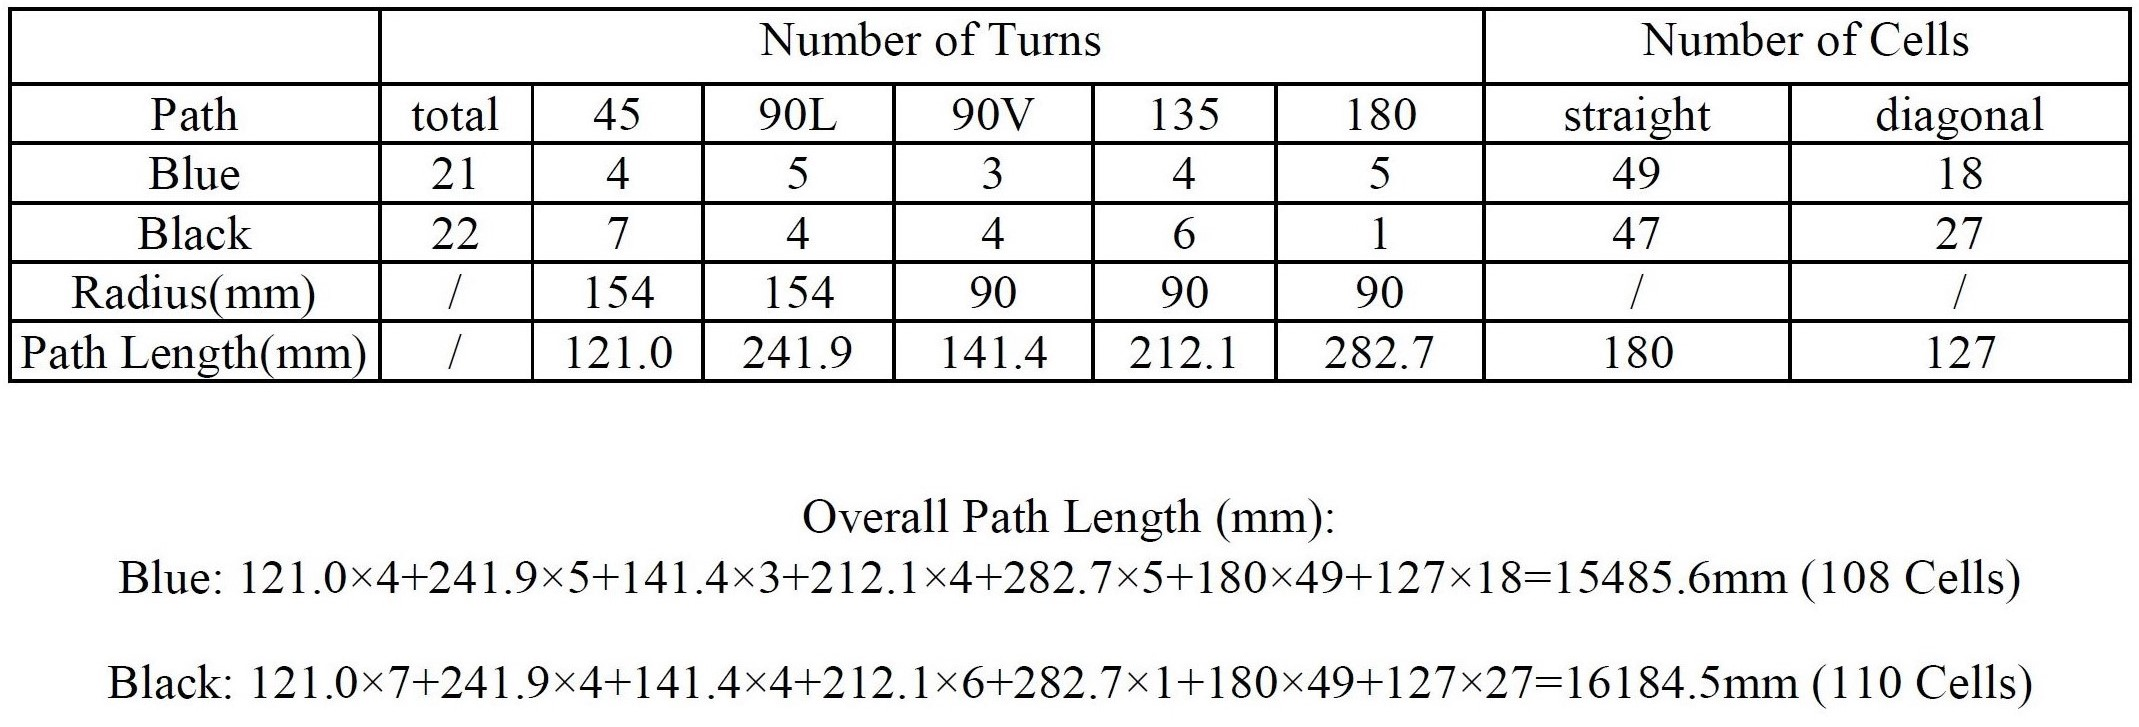 apec-17-path-analysis